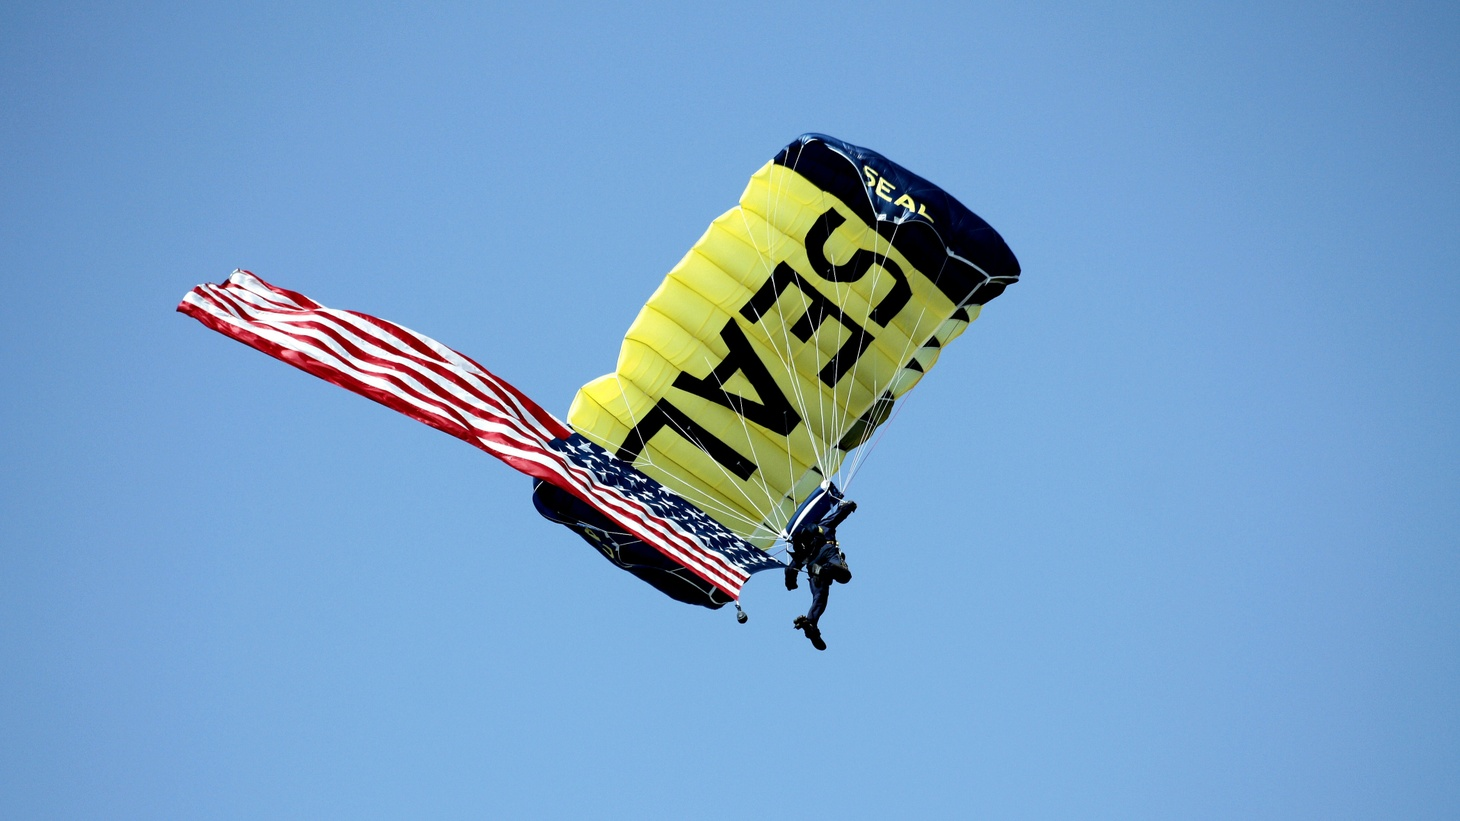 A member of the U.S. Navy Seals parachute team.